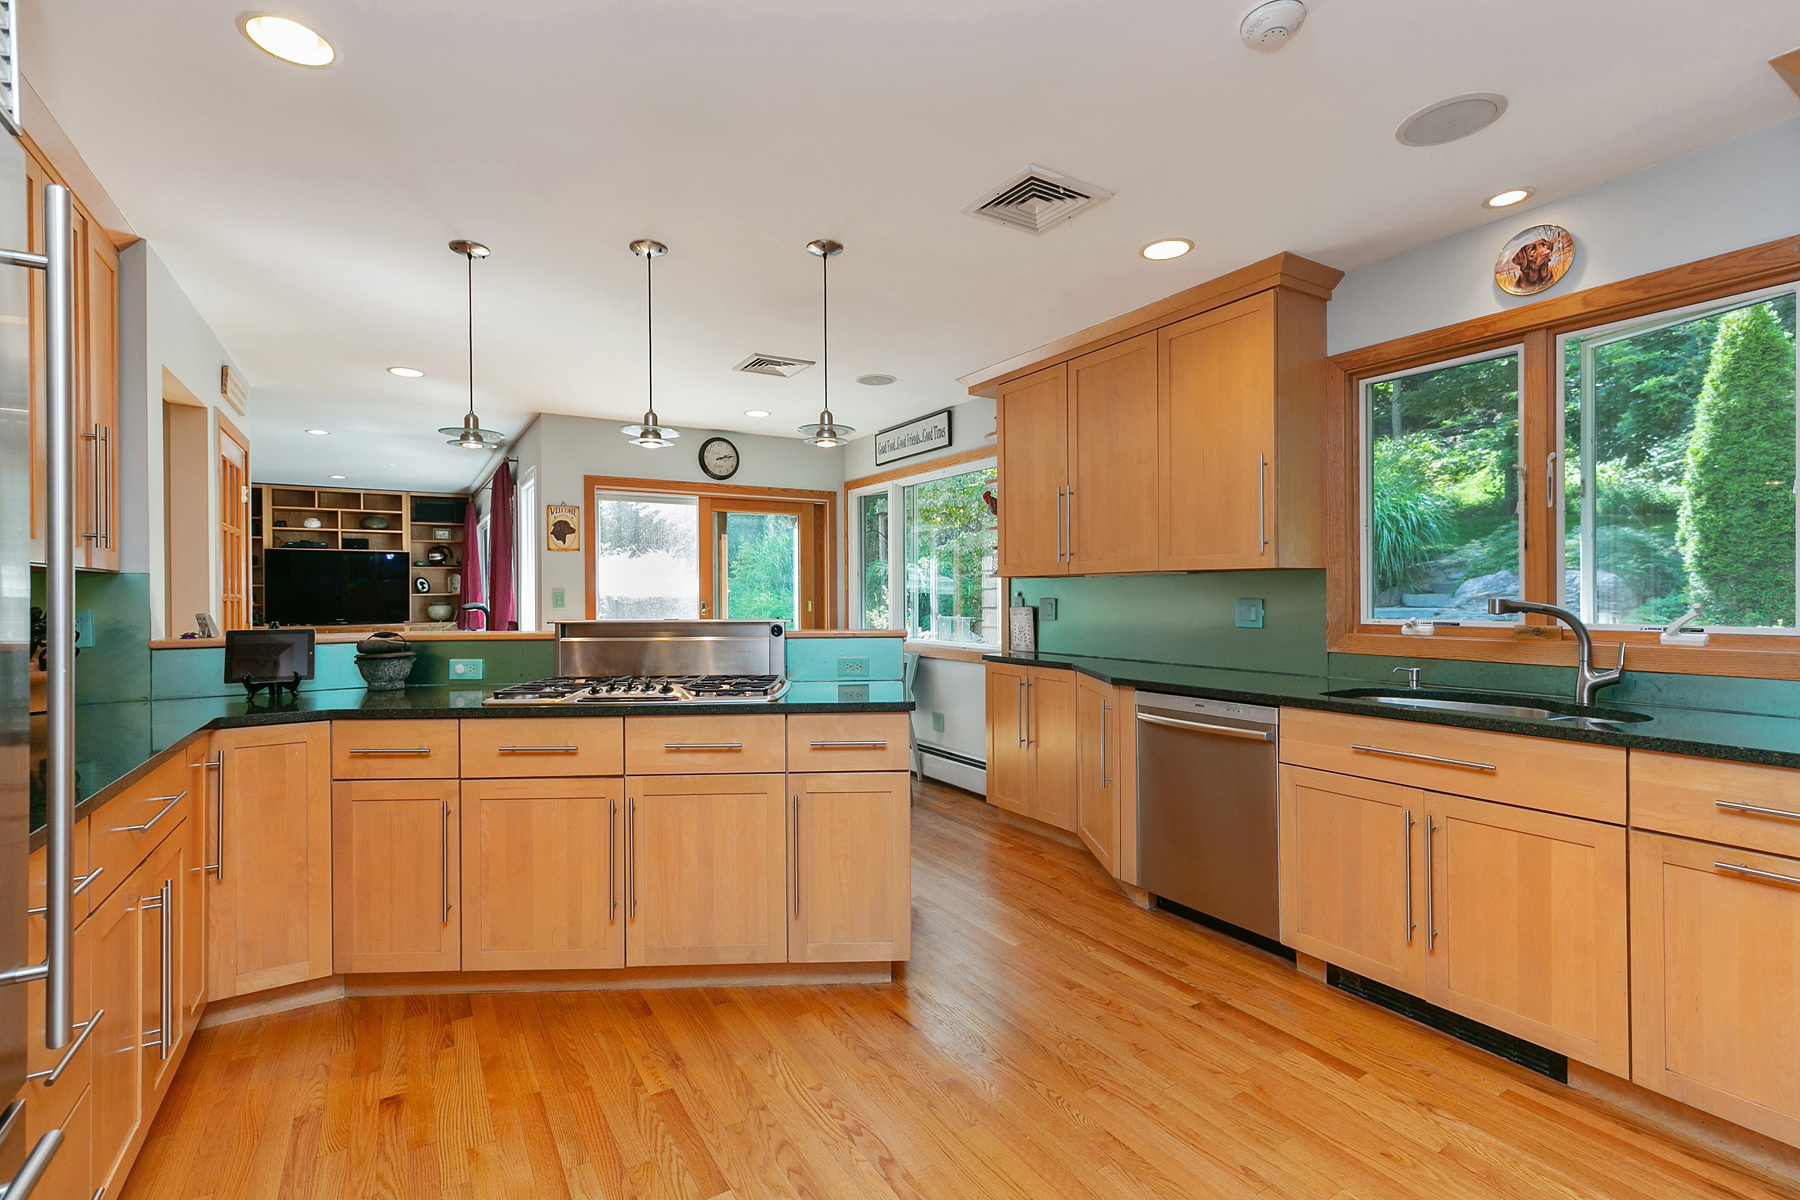 Additional photo for property listing at Serene Country Ranch 507 Croton Lake Road Bedford Corners, New York 10549 United States